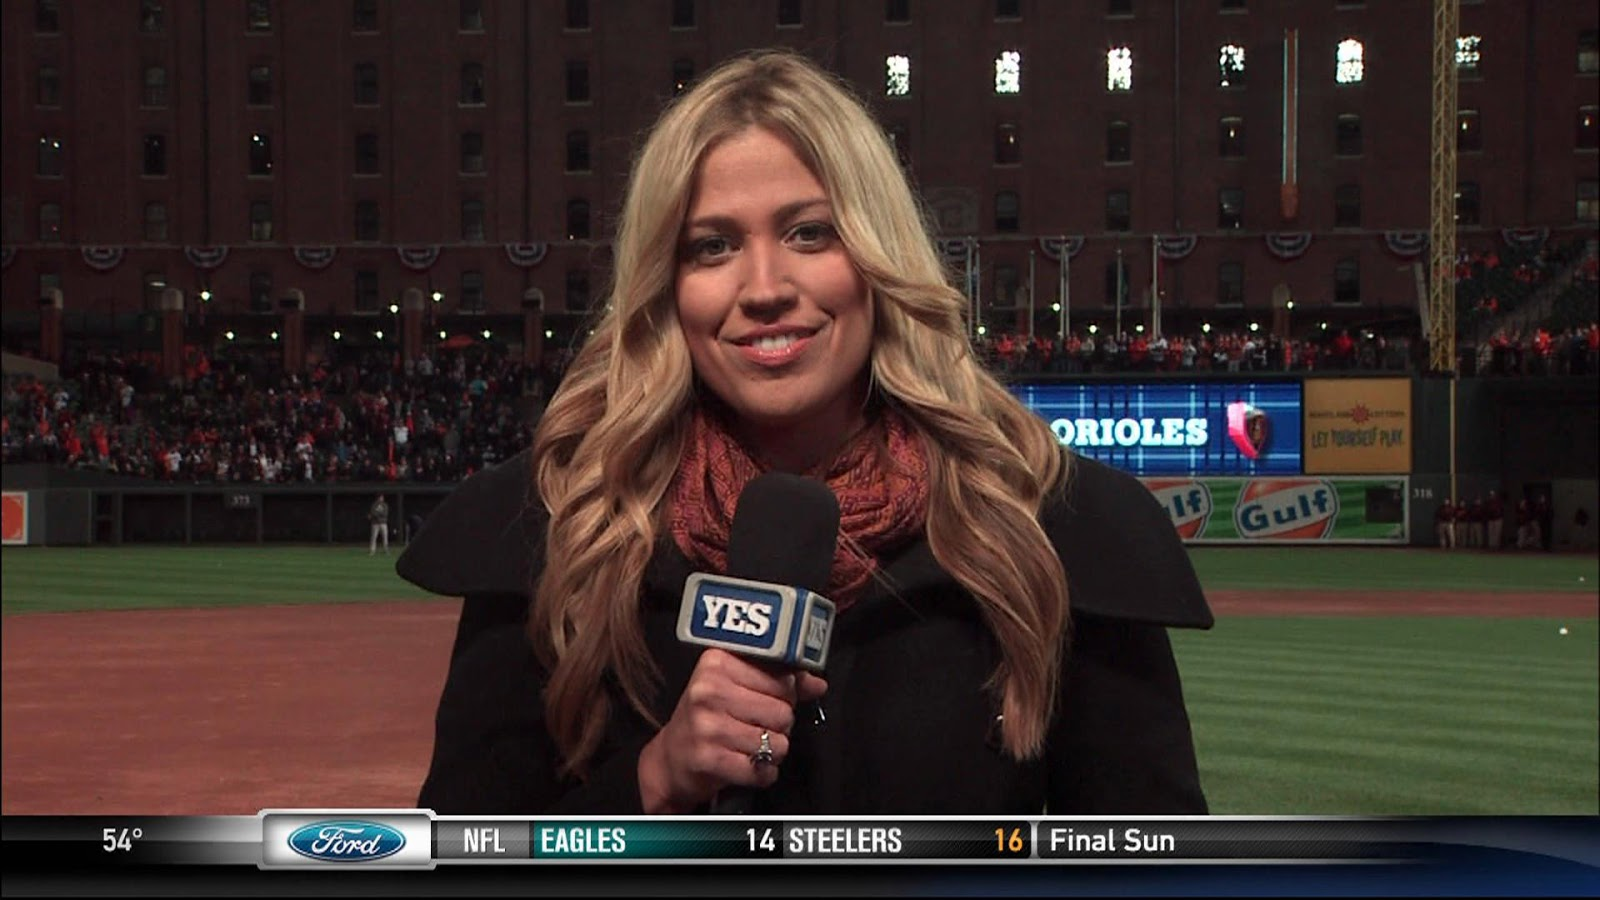 27 meredith marakovits yes - most popular female sports reporters on twitter